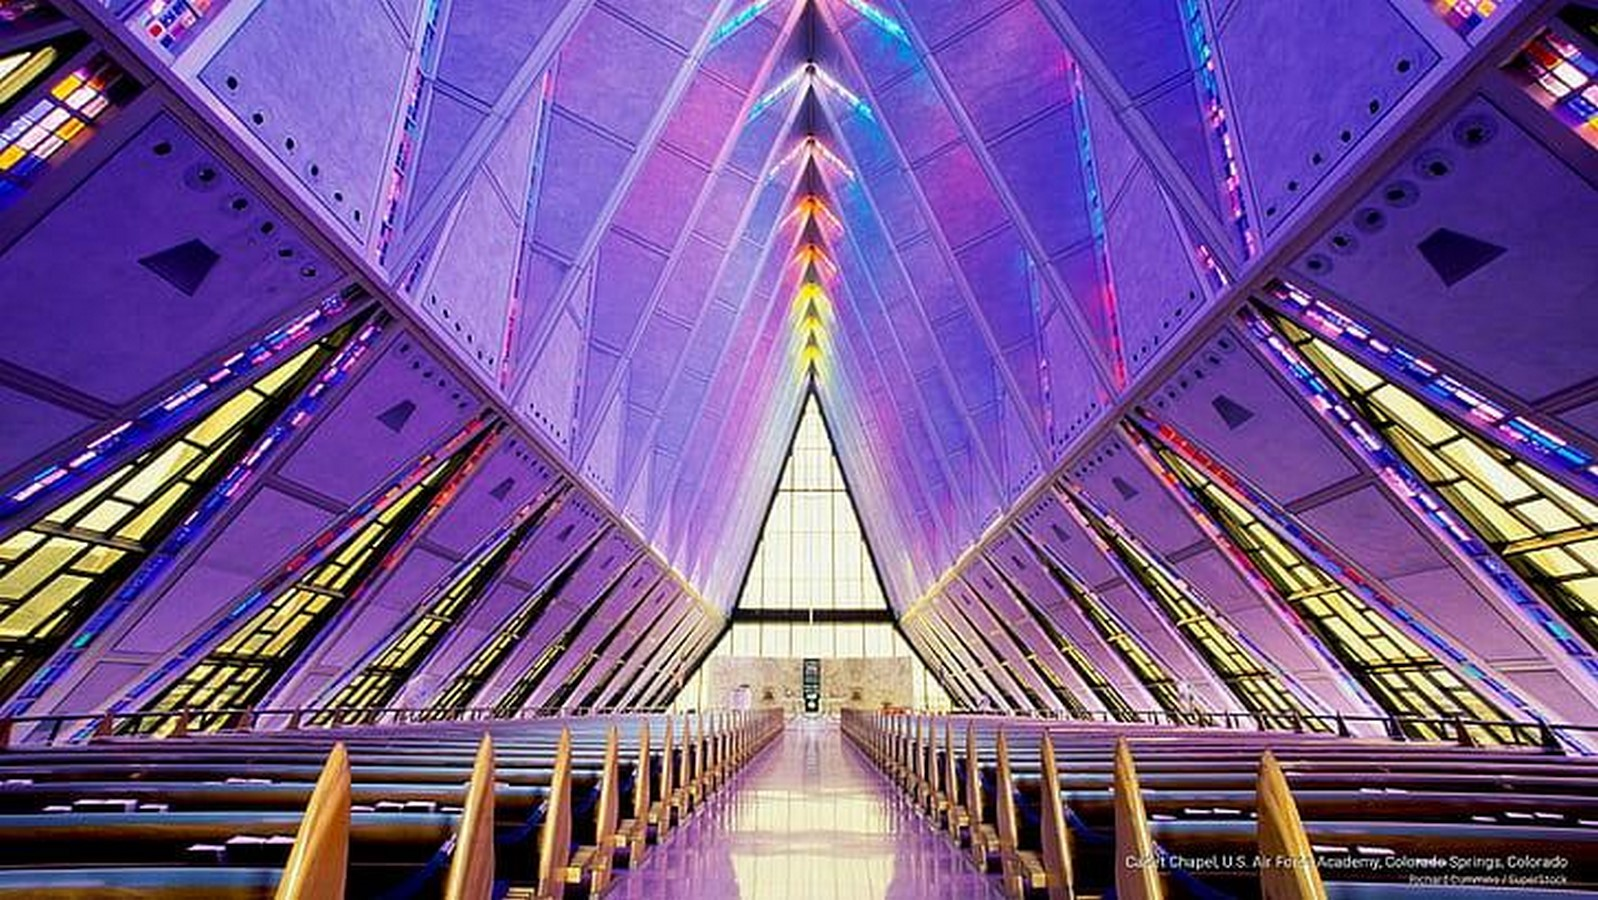 United States Air Force Academy Cadet Chapel by SOM: A Surreal Experience - Sheet3